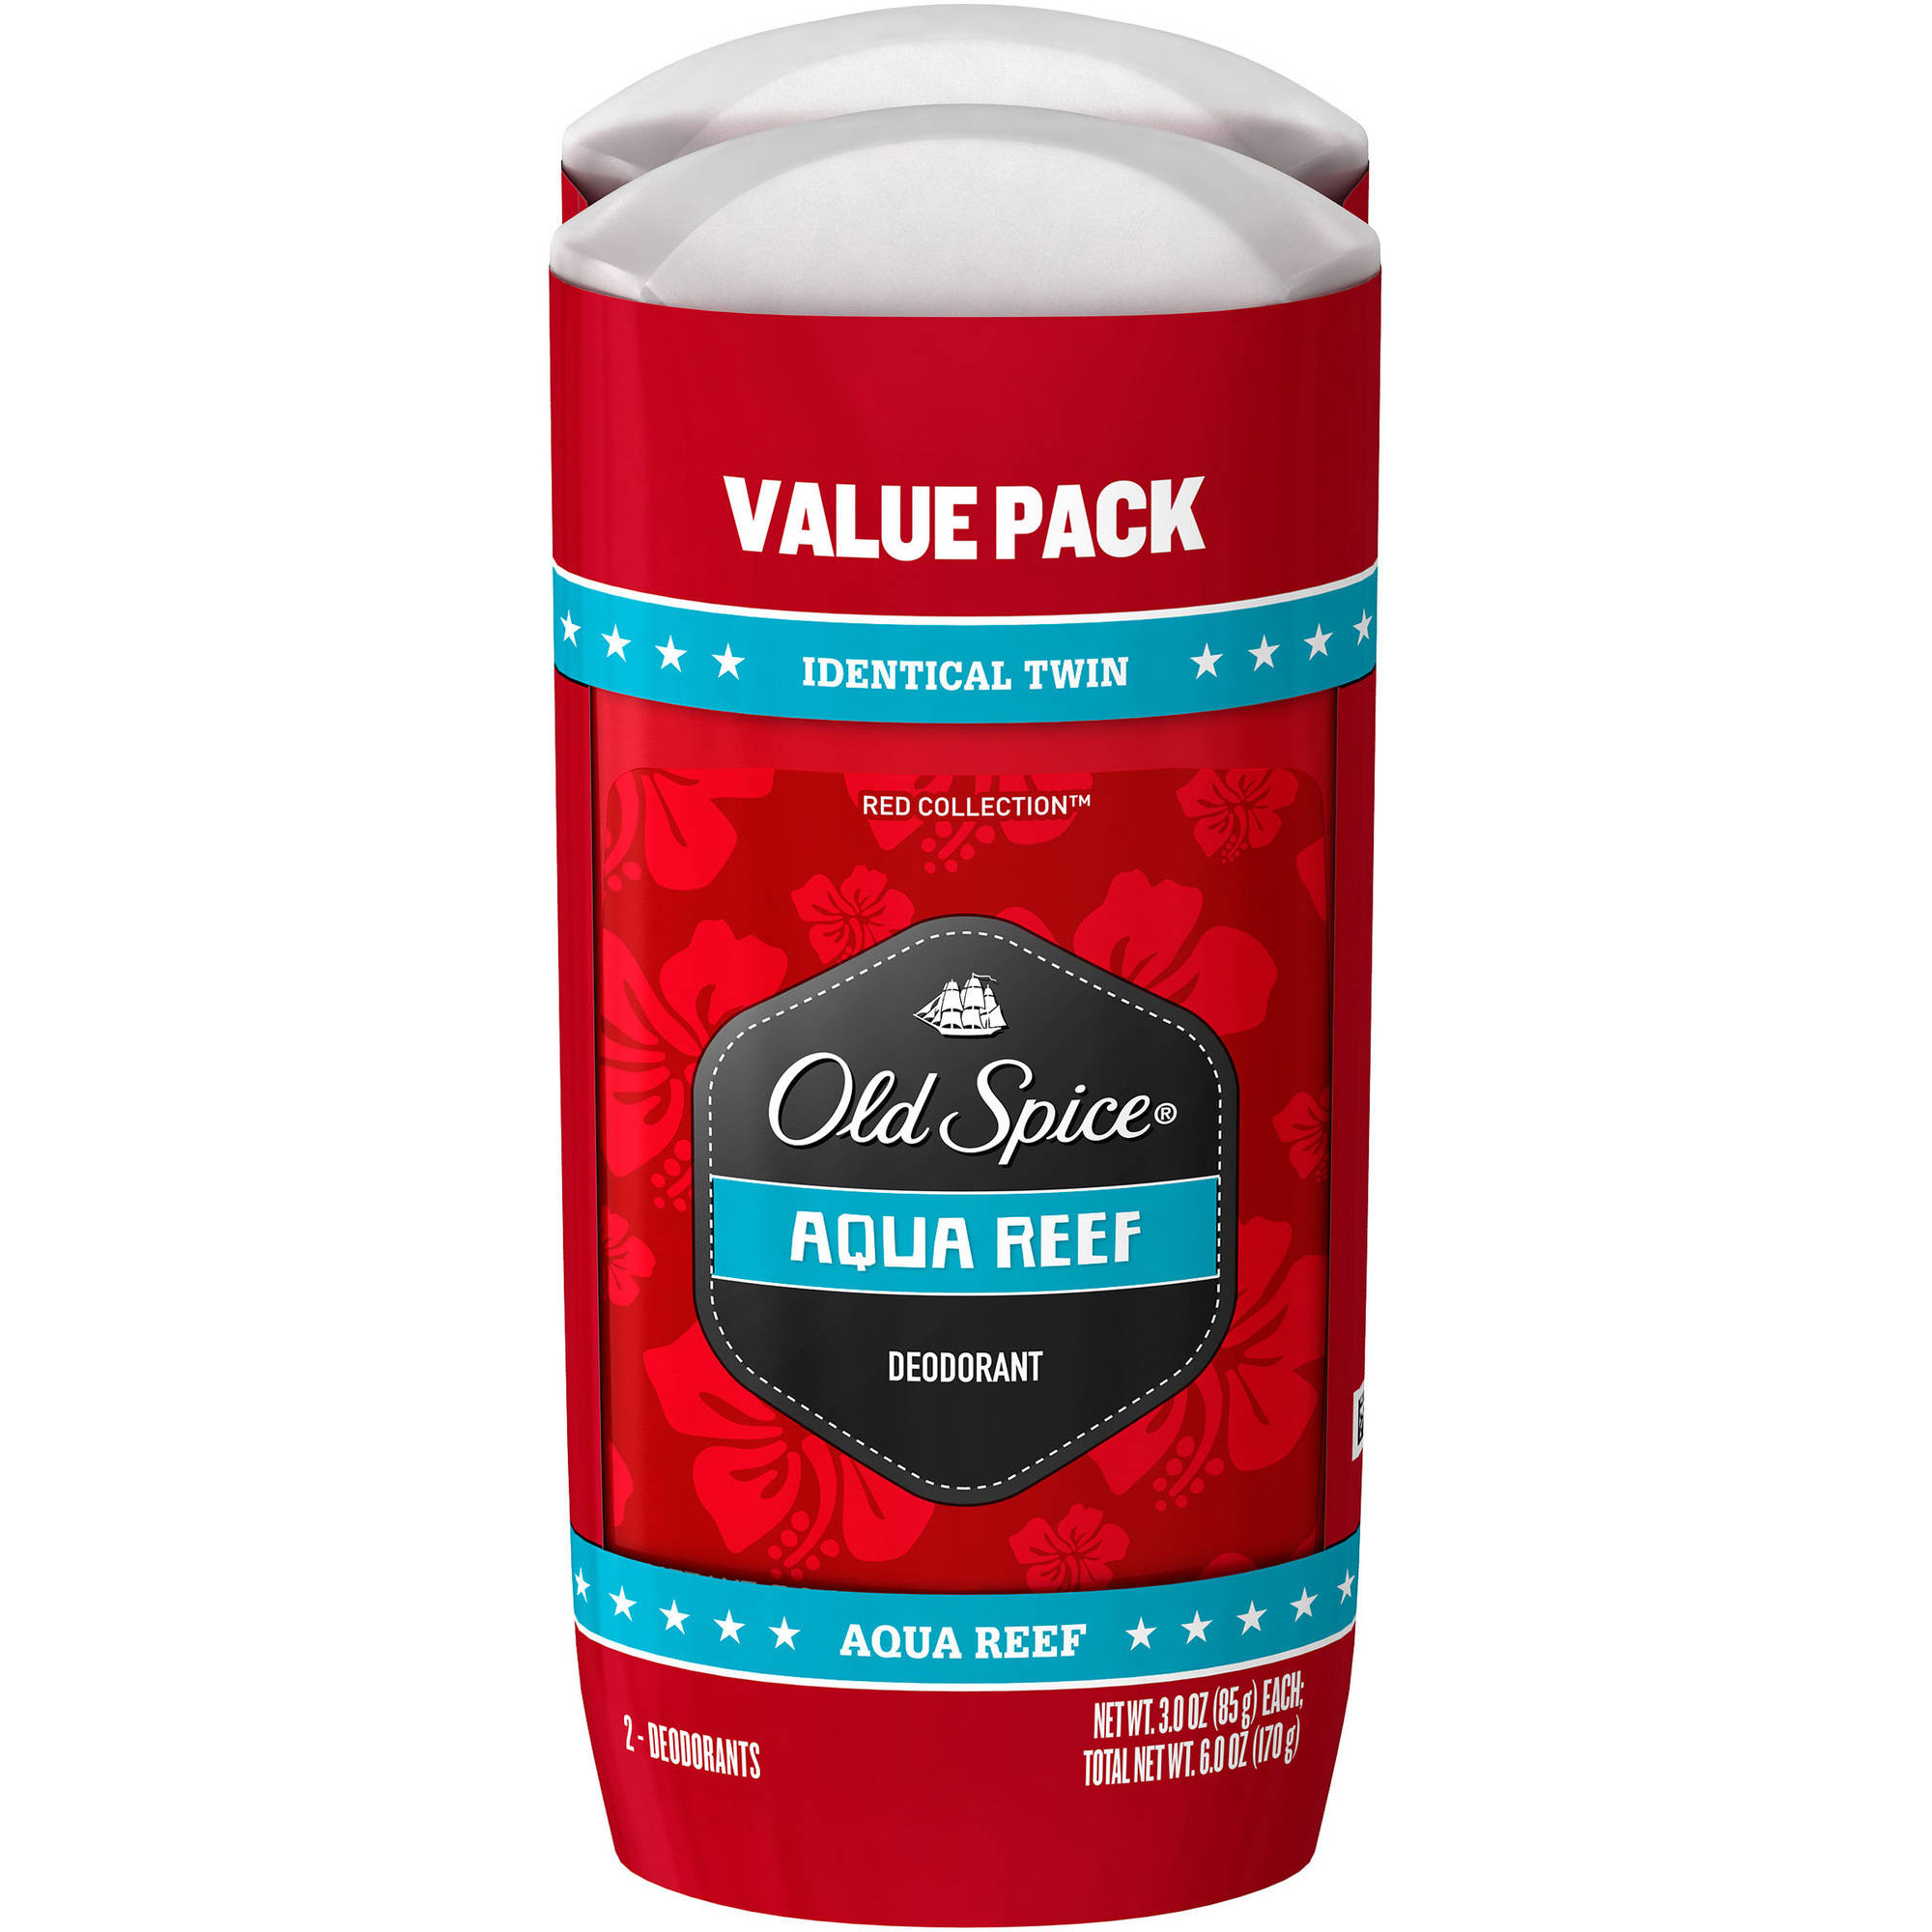 Old Spice Red Zone Collection Aqua Reef Scent Deodorant, 3 oz, (Pack of 2)